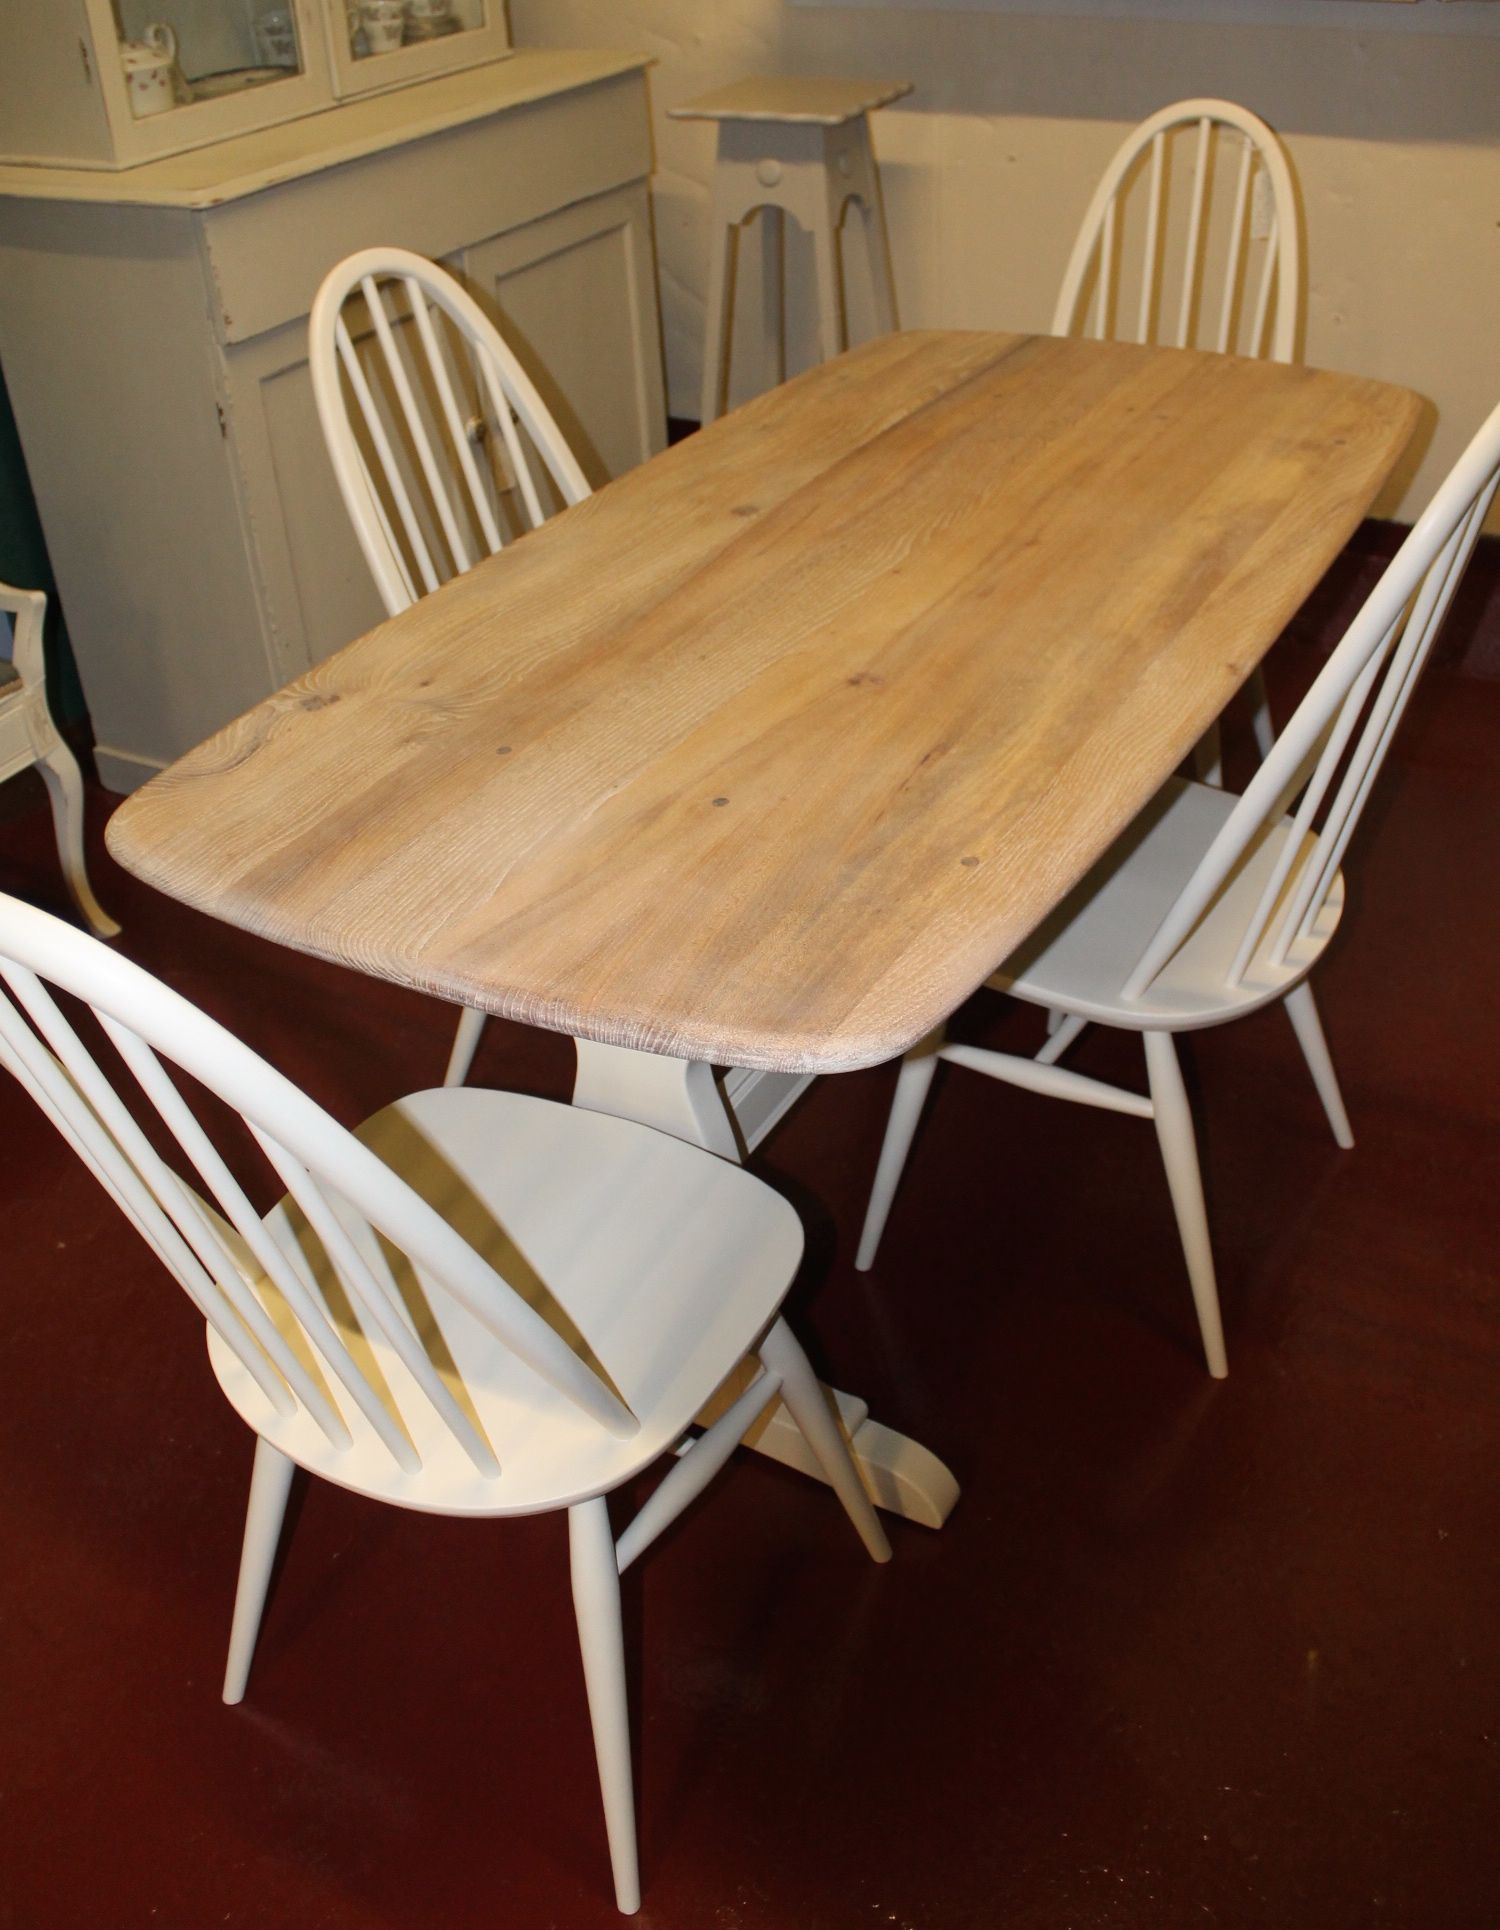 Ercol Dining Table And Four Chairs Ercol Dining Table Dining Table Ercol Furniture